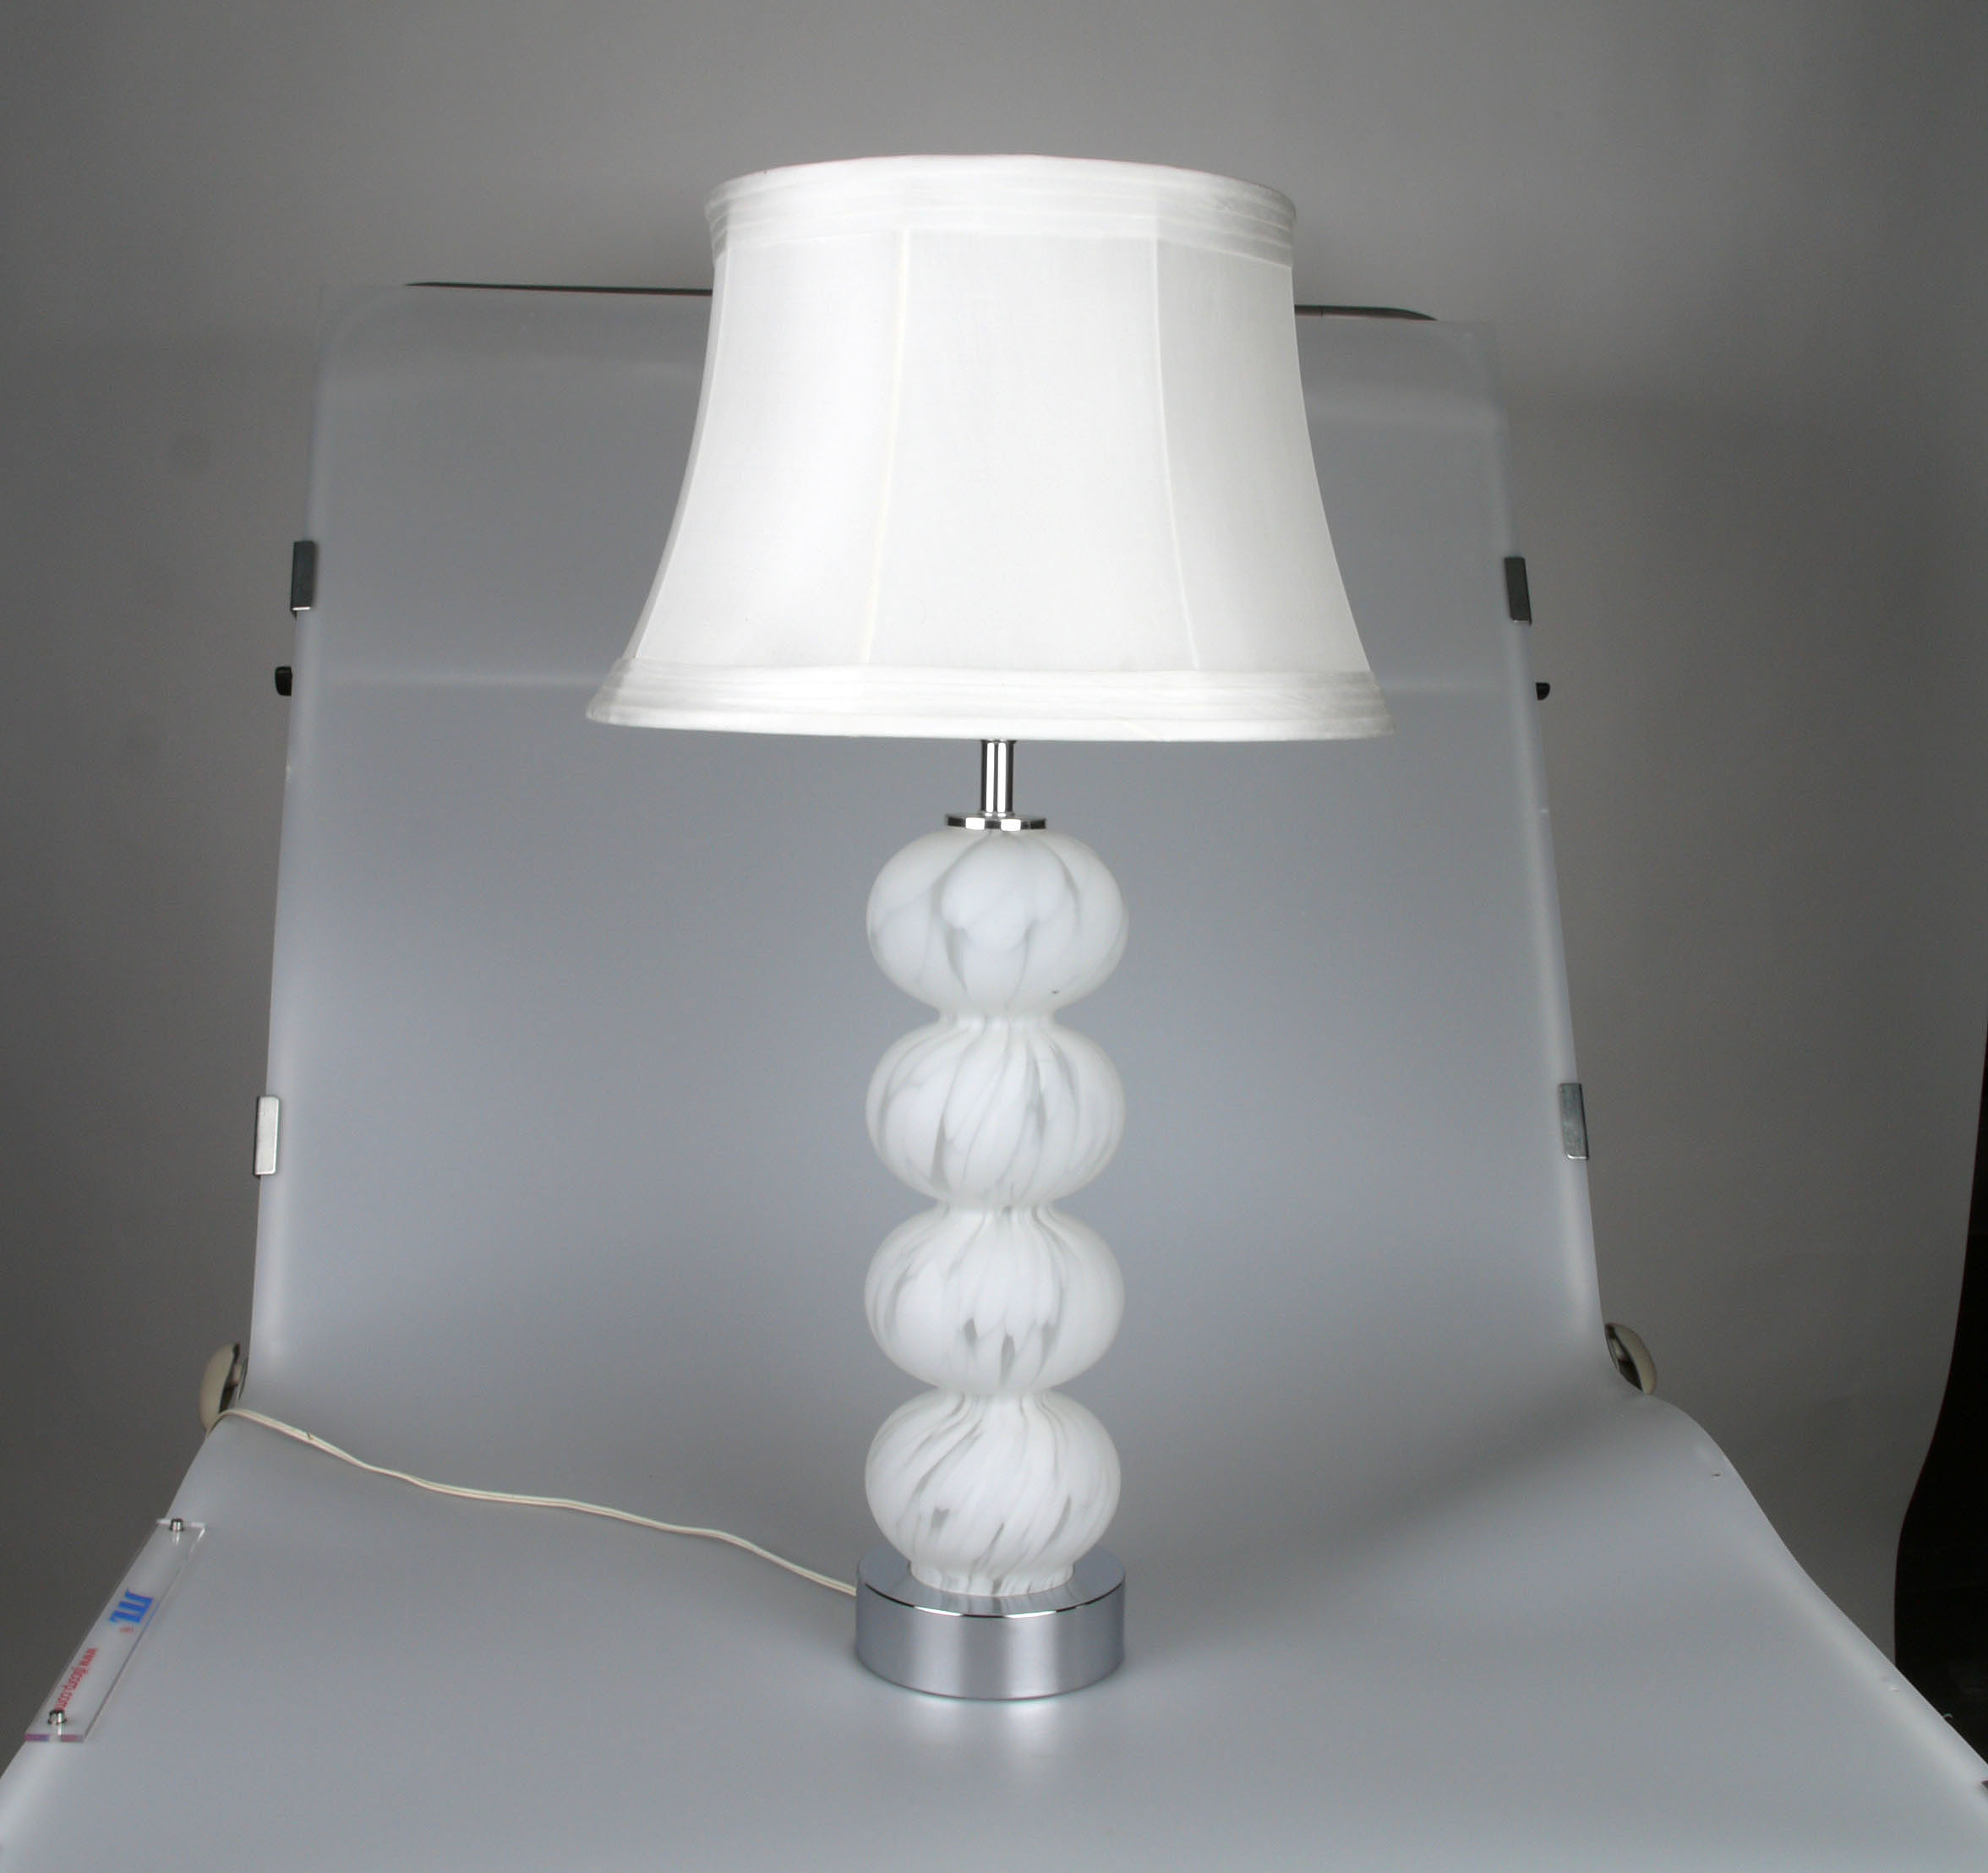 Chrome U0026 White Murano Glass Ball Table Lamp   Image 2 ...